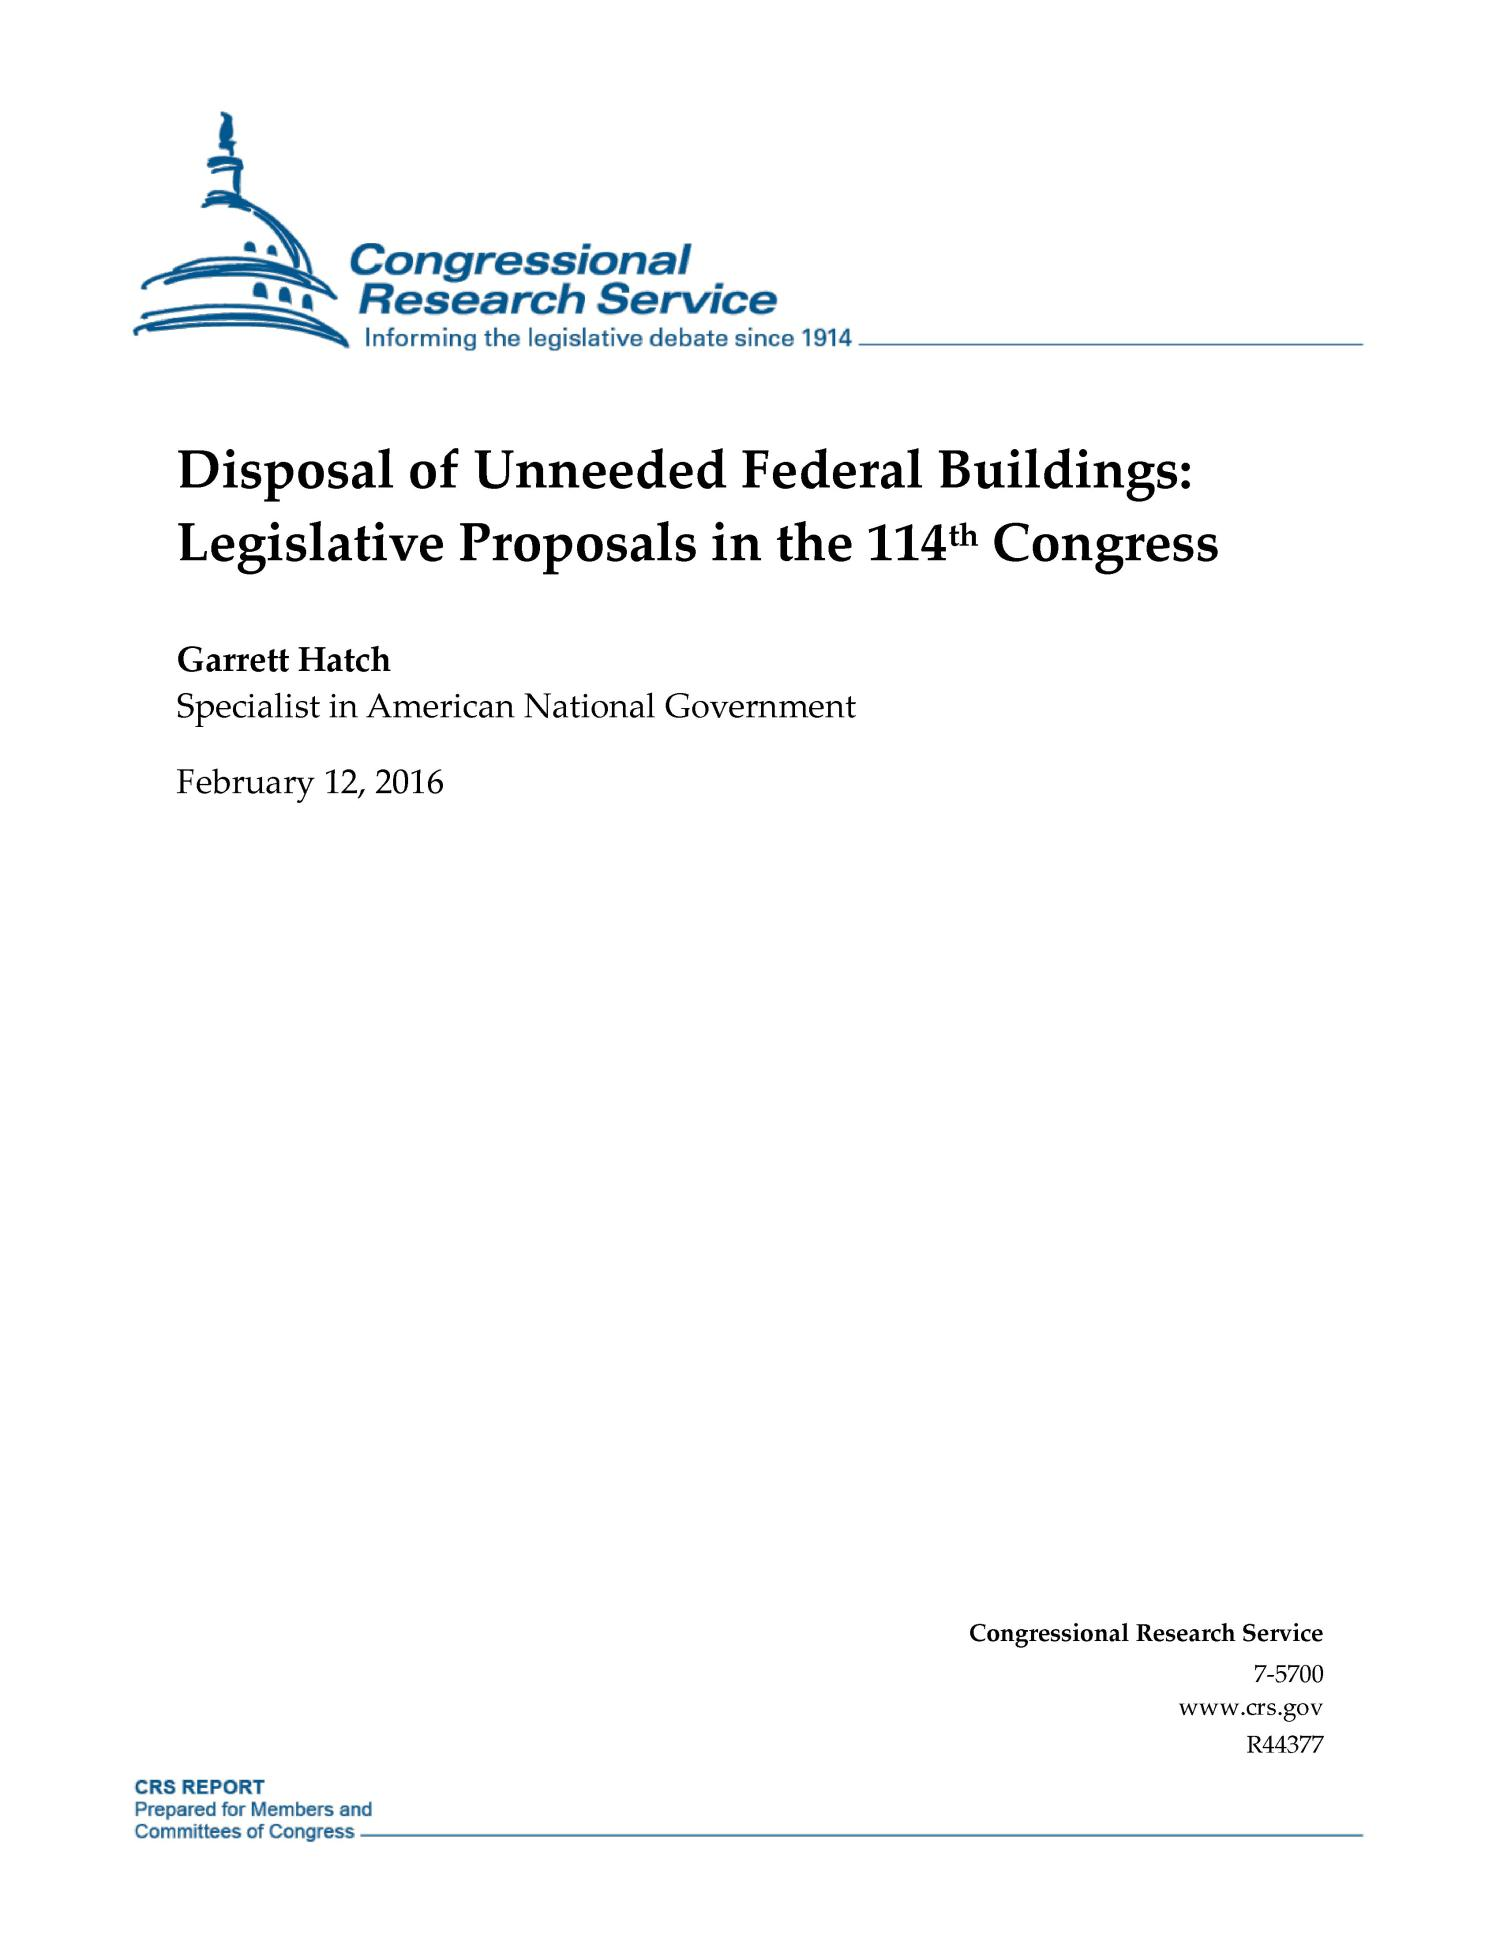 Disposal of Unneeded Federal Buildings: Legislative Proposals in the 114th Congress                                                                                                      [Sequence #]: 1 of 20